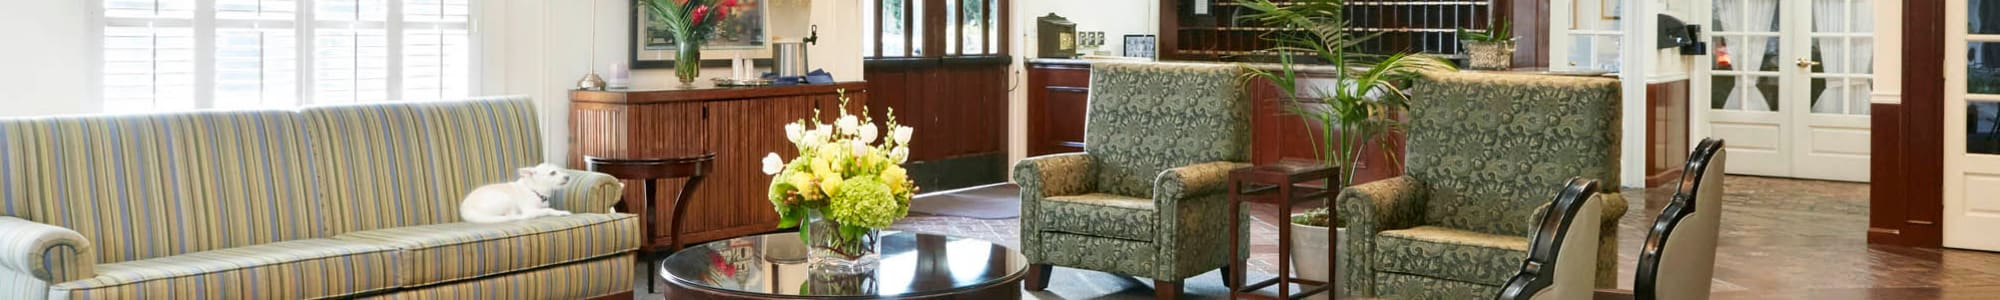 Assisted living services at Regency Park Oak Knoll